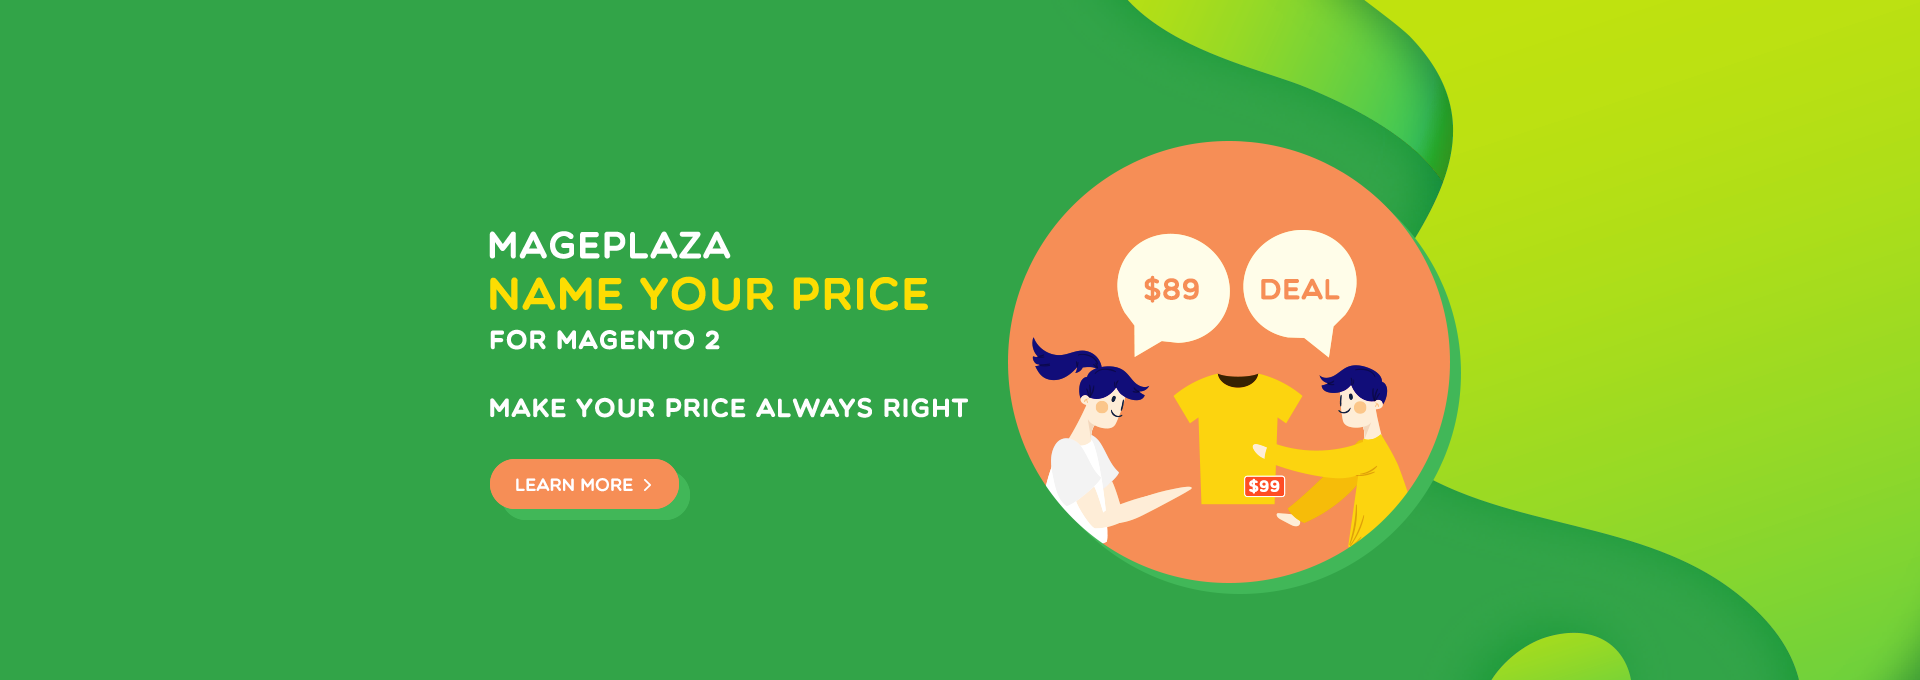 How to bargain Magento 2 products by Name Your Price extension